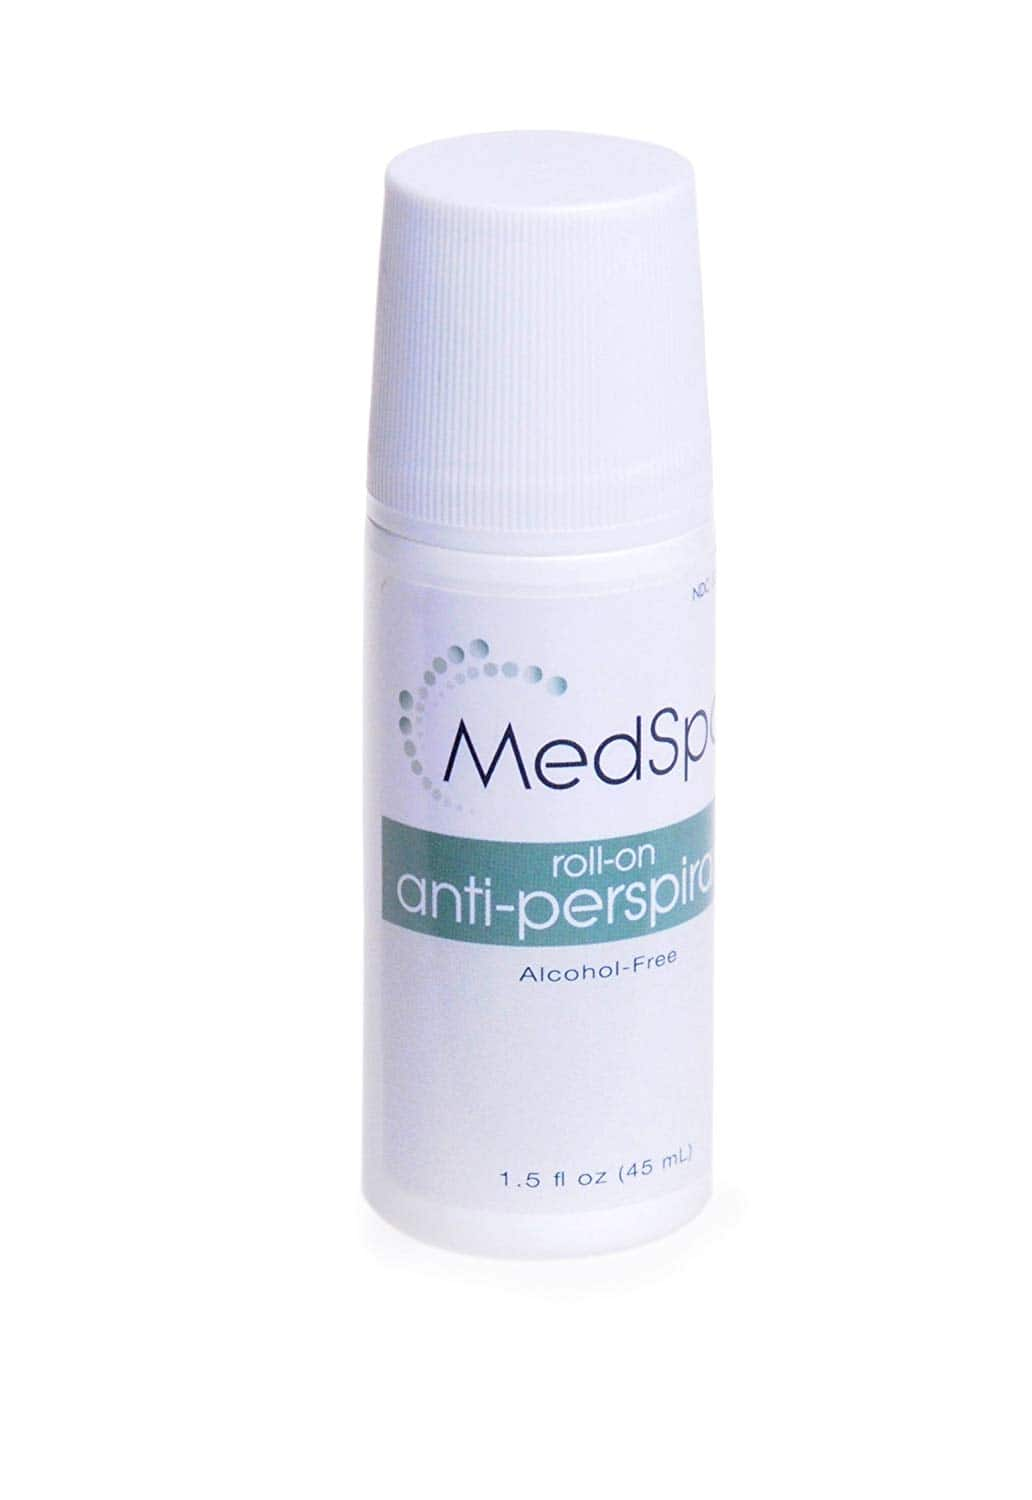 Medline MSC095010 Med Spa Roll On Antiperspirant/ Deodorant - Free Prime One Day Shipping- Amazon $0.50